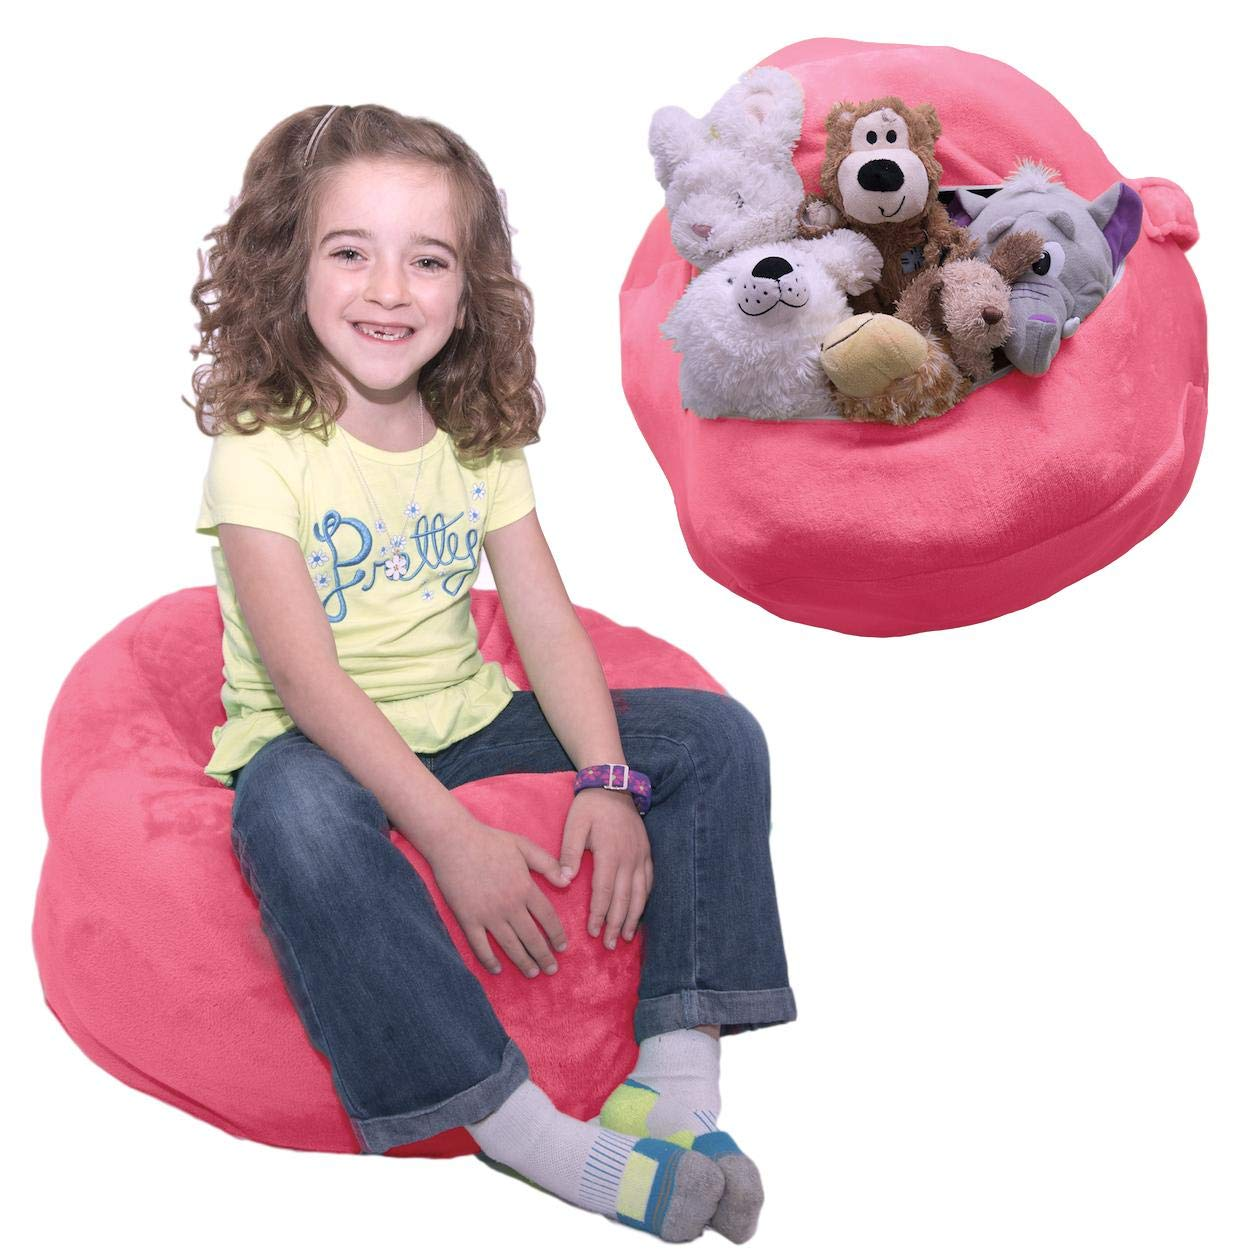 stuffed animal bean bag storage soft n snuggly comfy plush fabric kids prefer. Black Bedroom Furniture Sets. Home Design Ideas